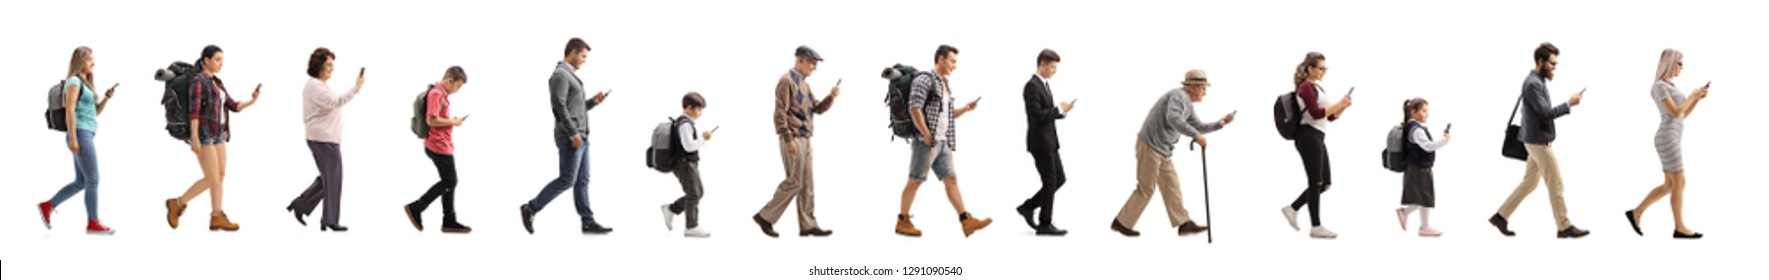 Full length profile shot of a long queue of people walking and using a mobile phone isolated on white background